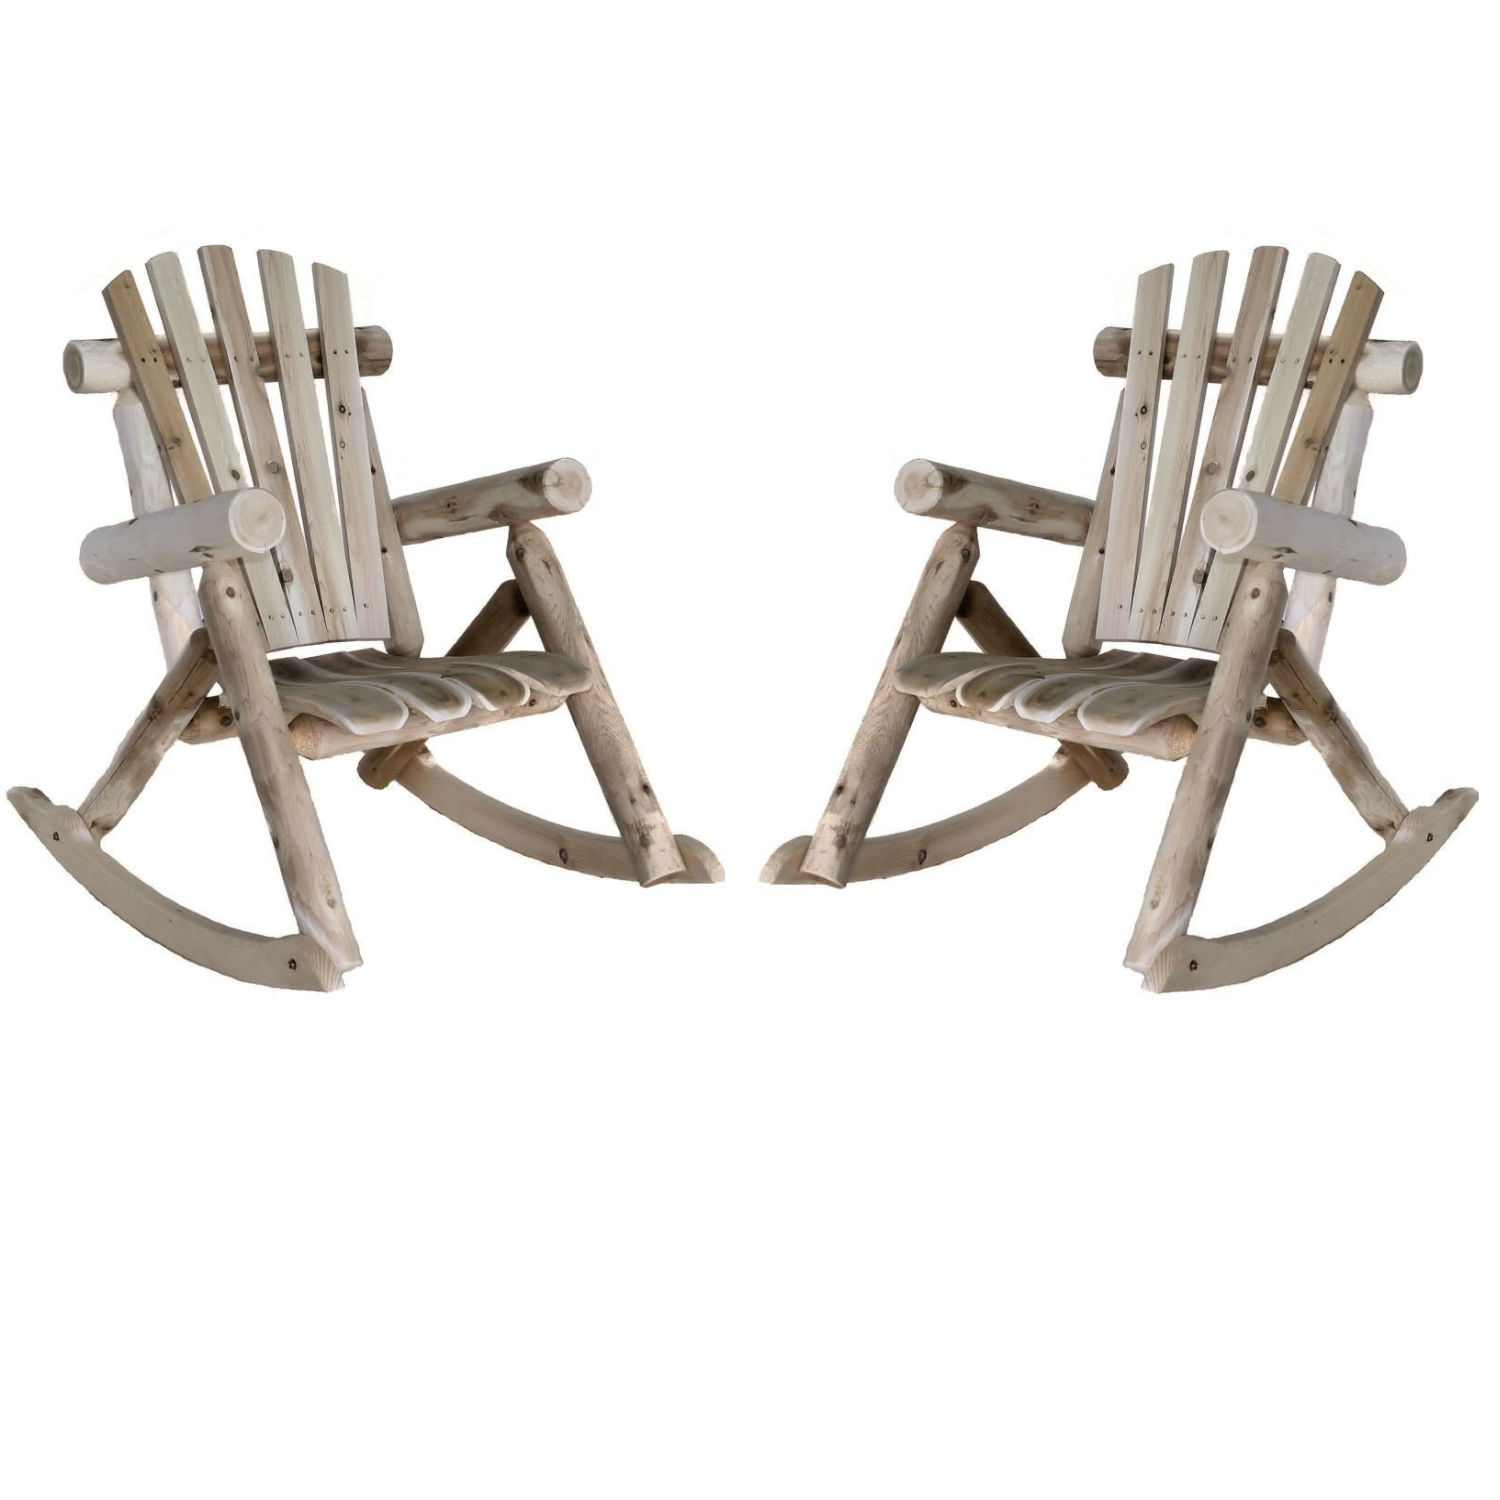 Lakeland Mills Patio Rocking Chair (Set of 2)